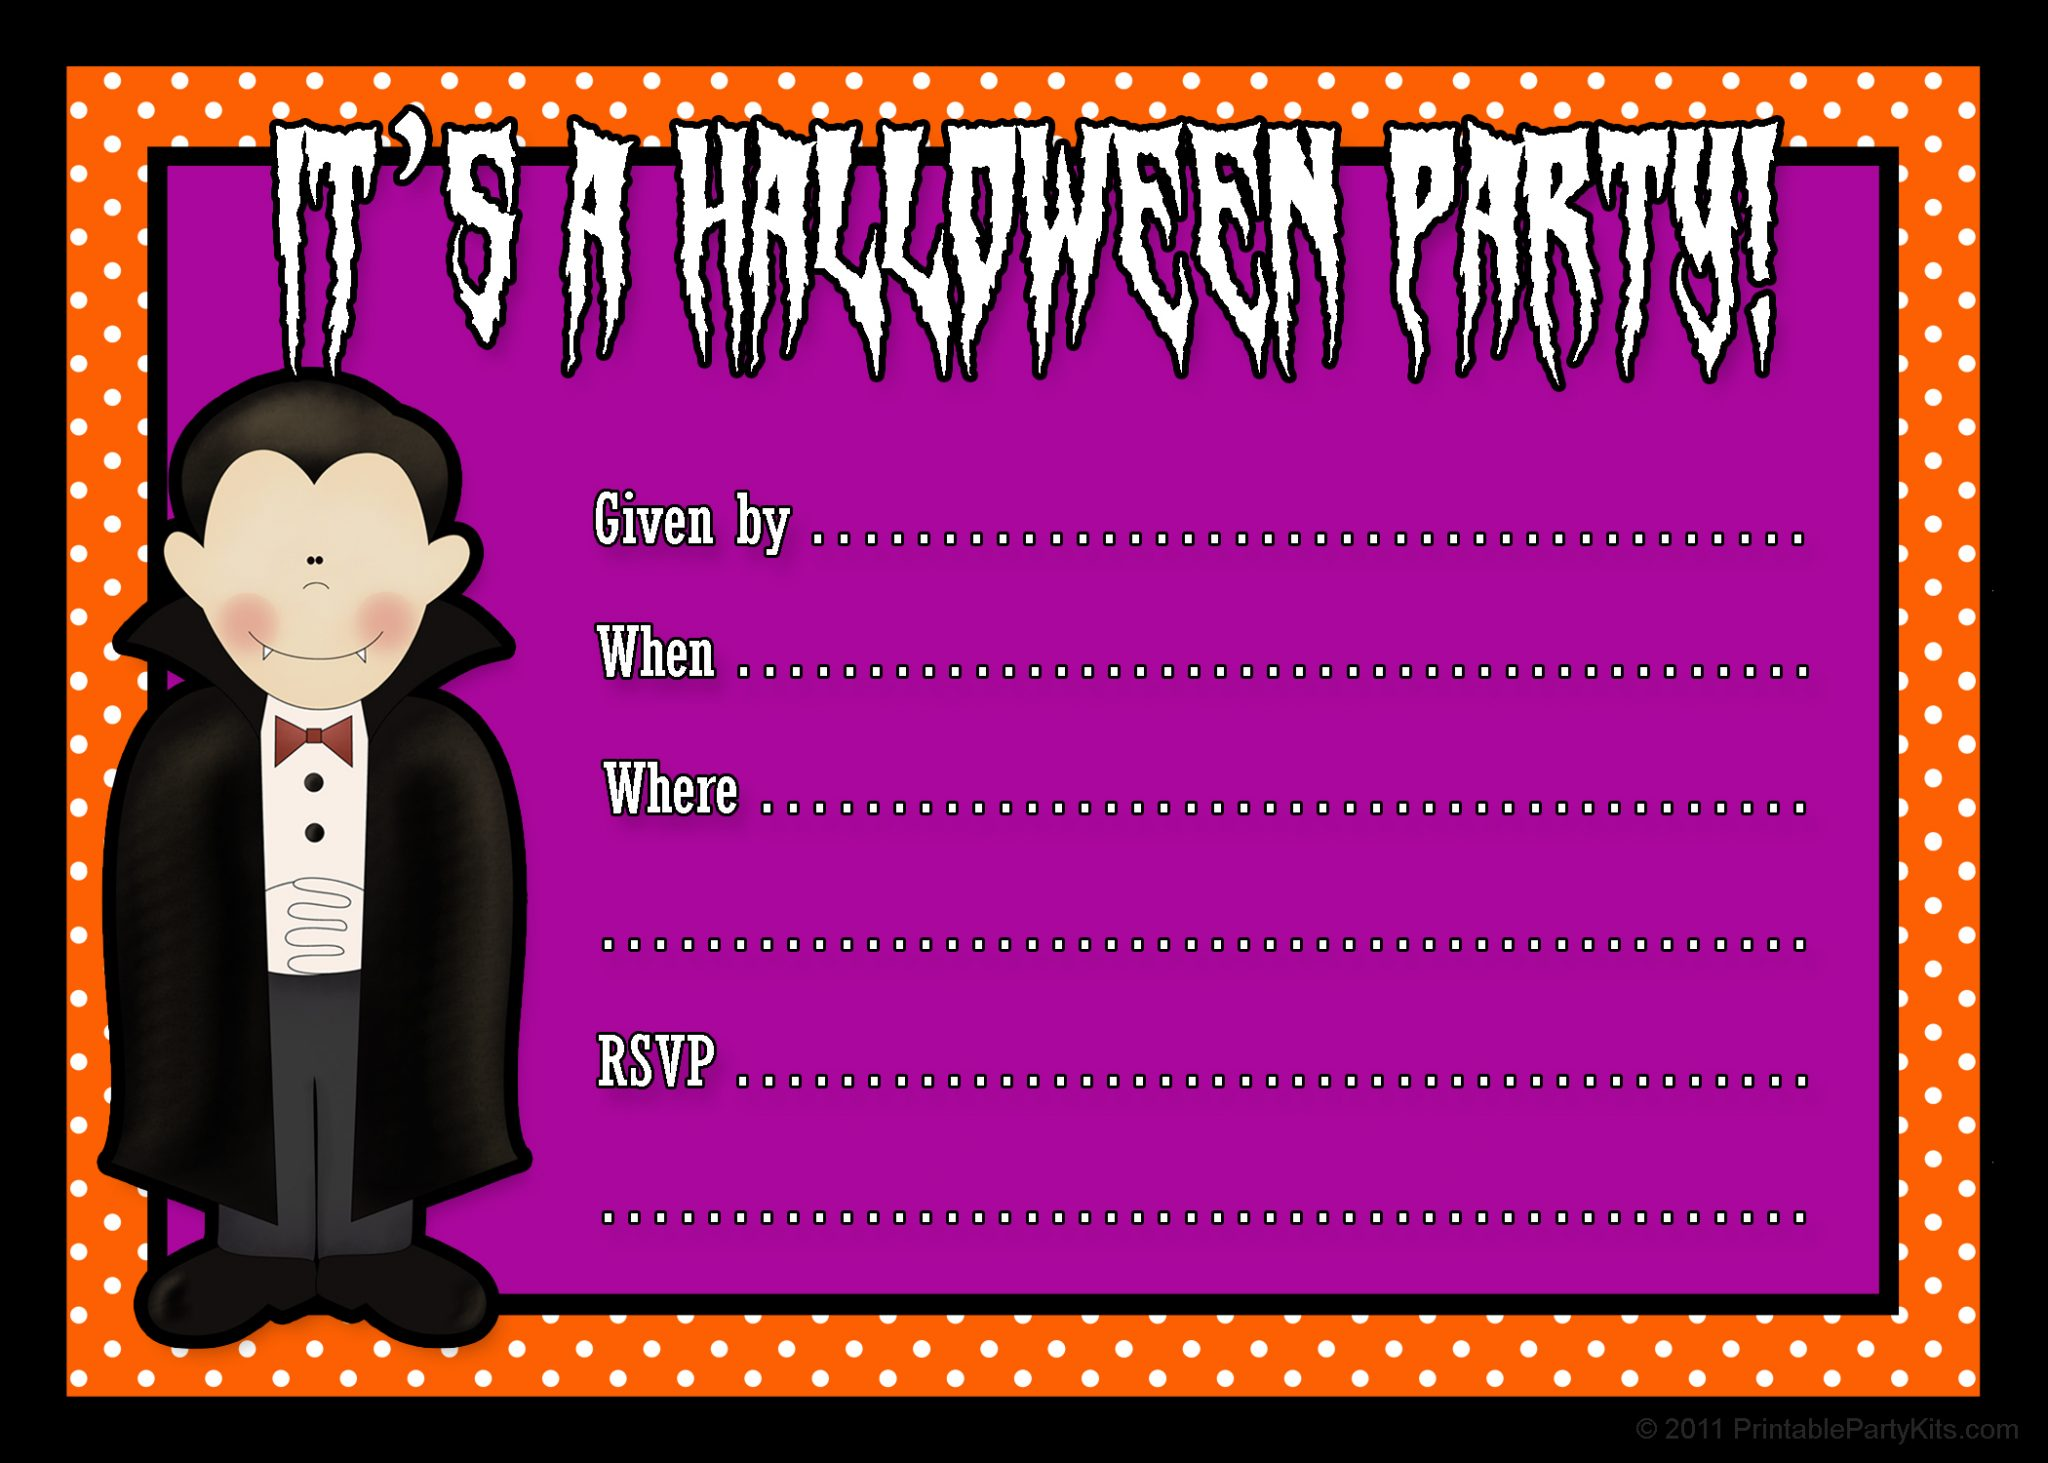 Free Printable Halloween Party Invites – Free Printable Halloween Party Invitations Templates